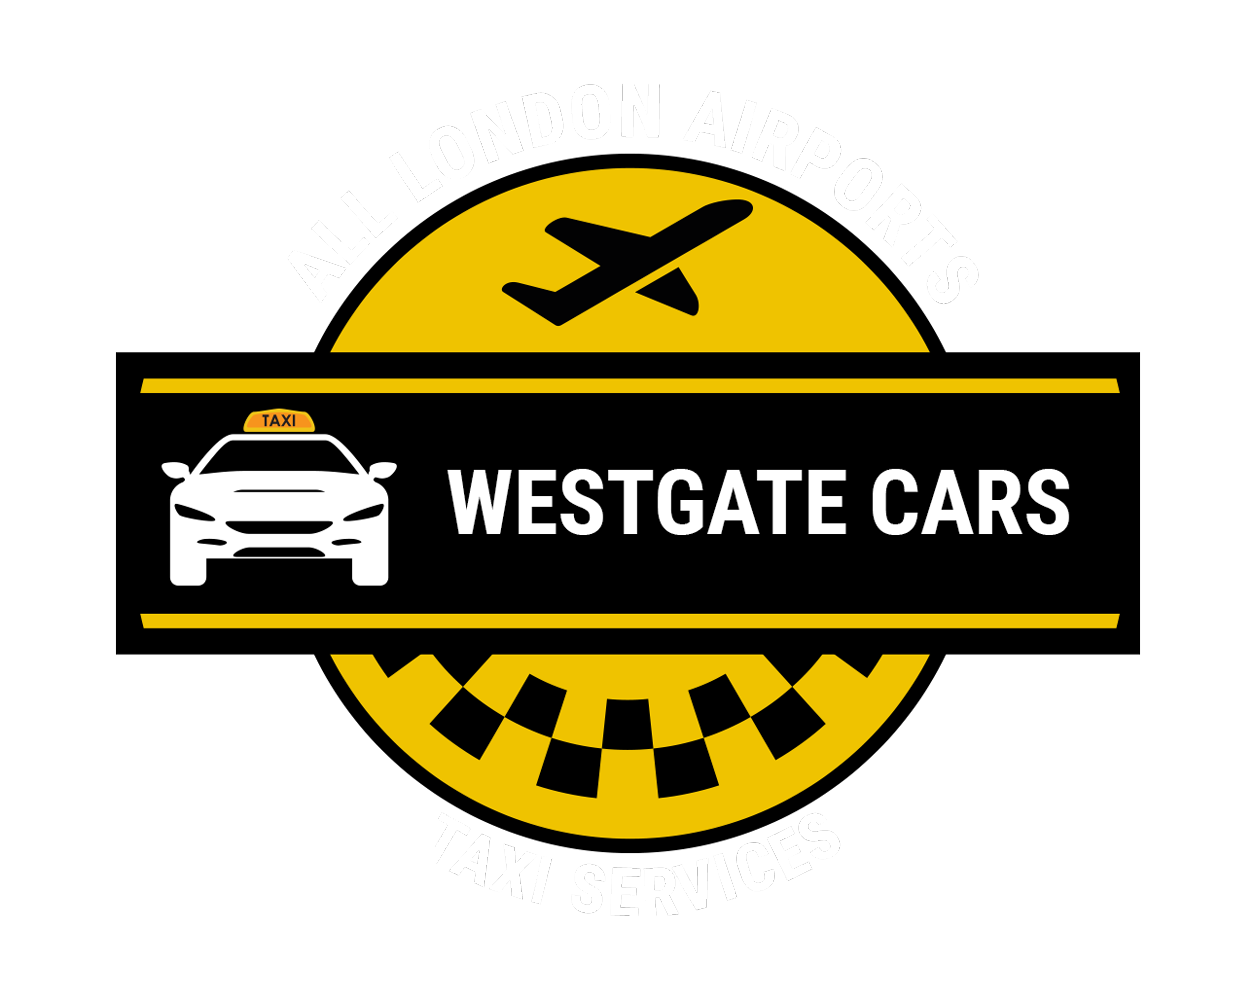 Westgate Cars - Airport transfer specialist